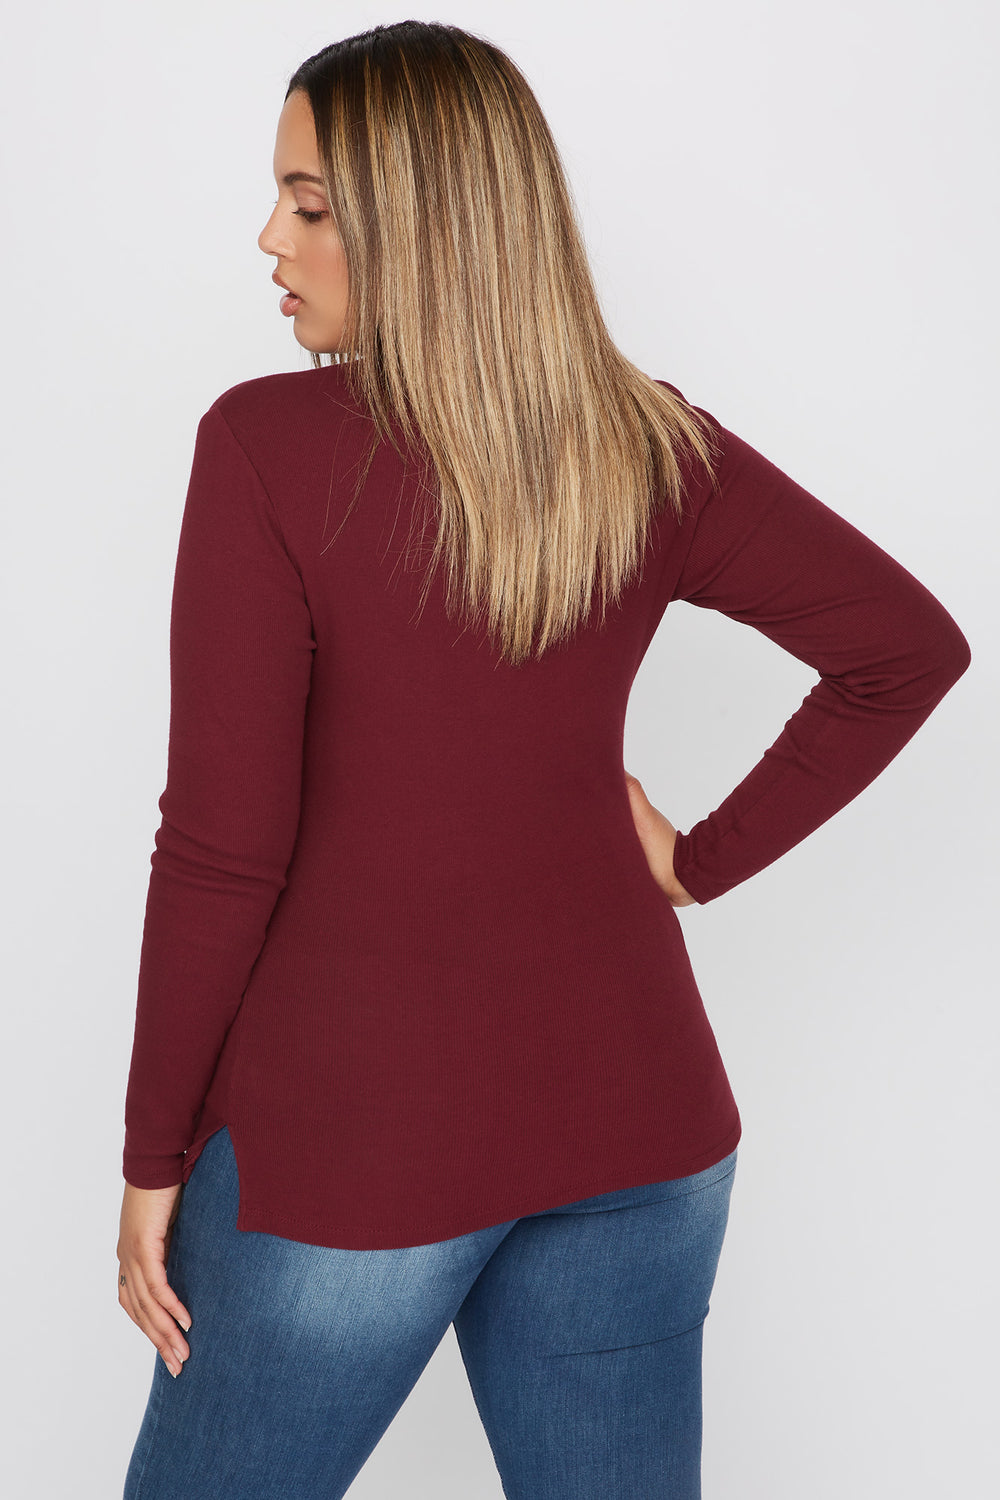 Plus Size Basic Ribbed Turtleneck Long Sleeve Top Burgundy